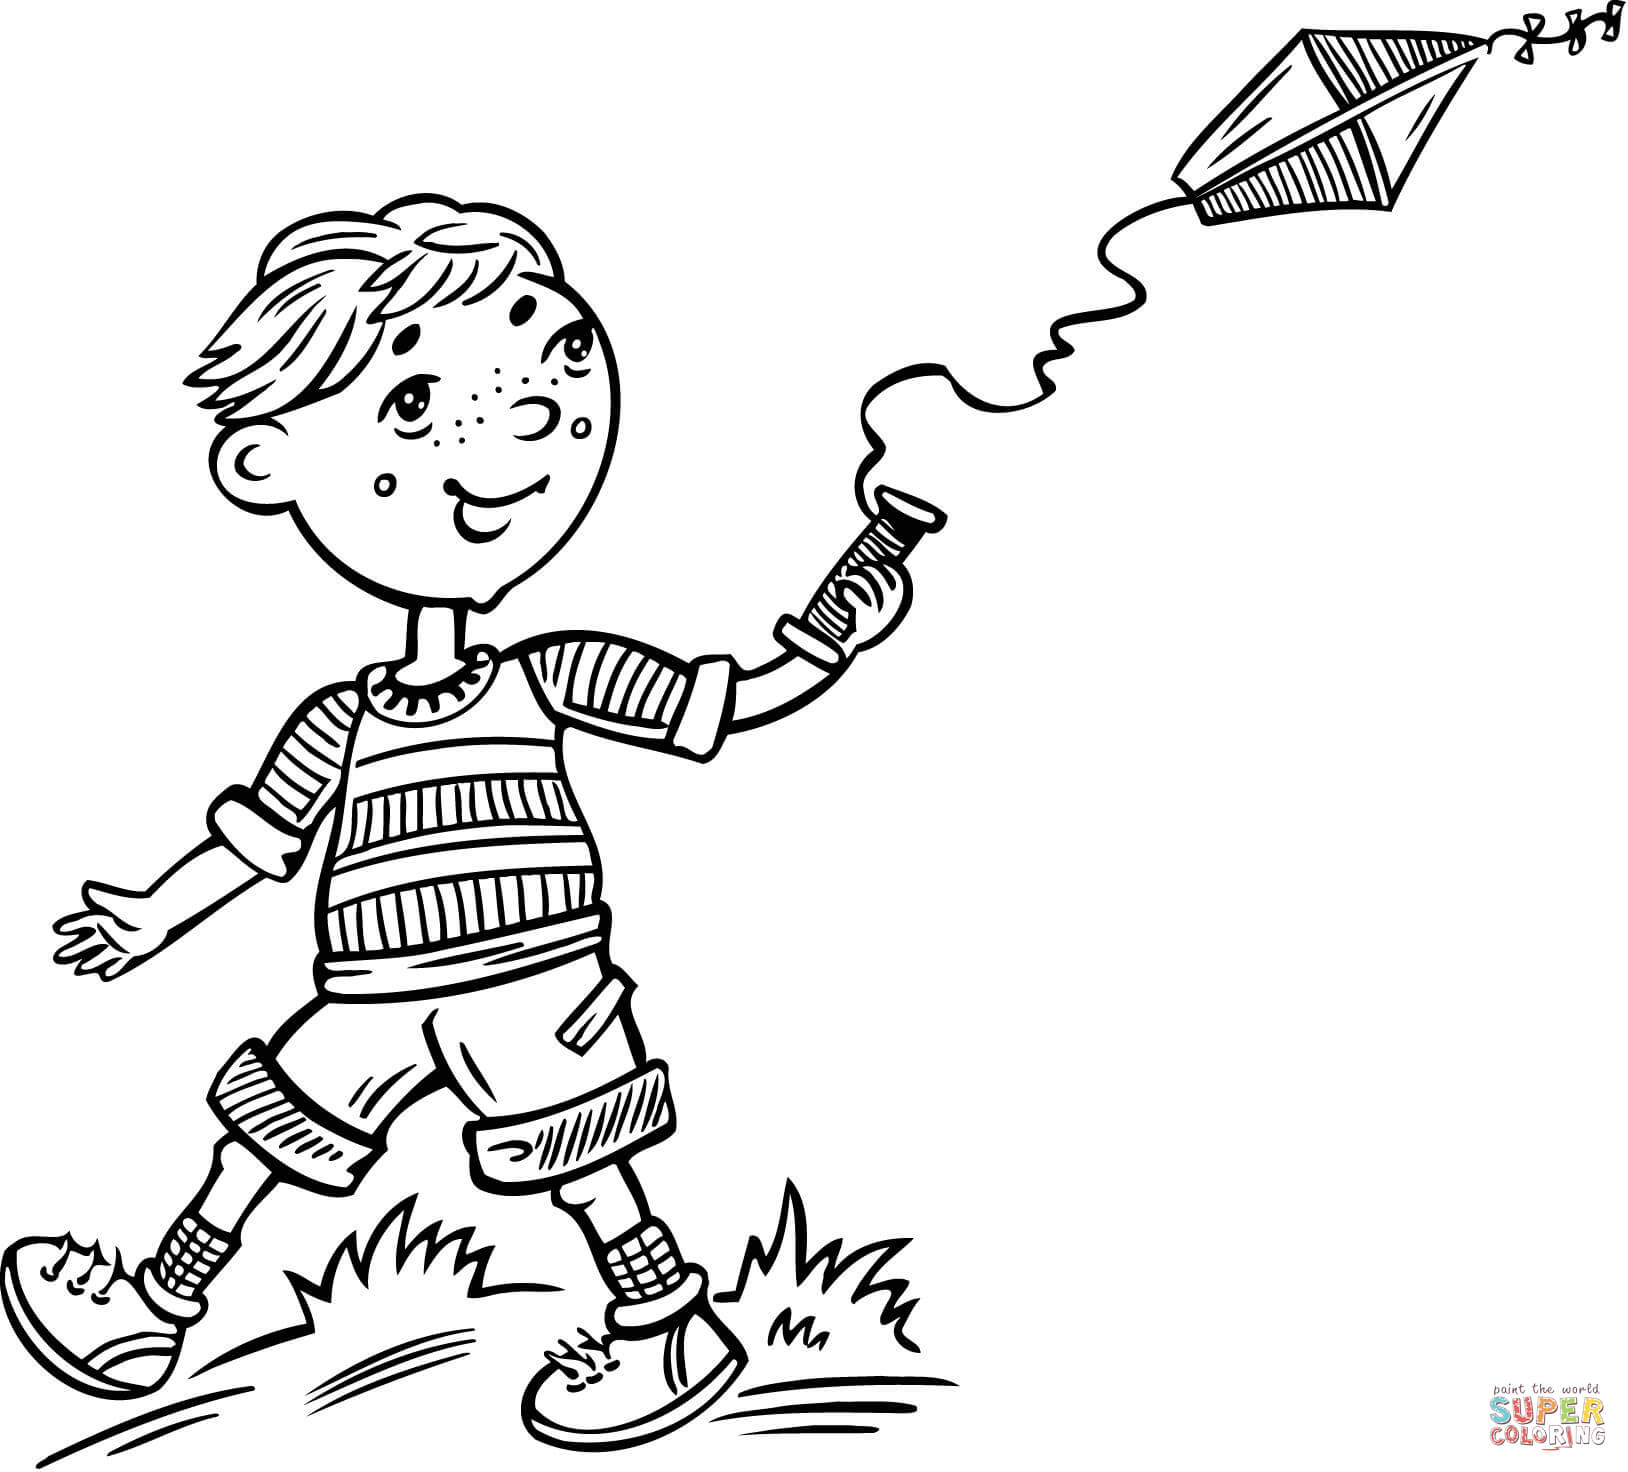 boy flying a kite coloring page free printable coloring pages - Kite Coloring Page